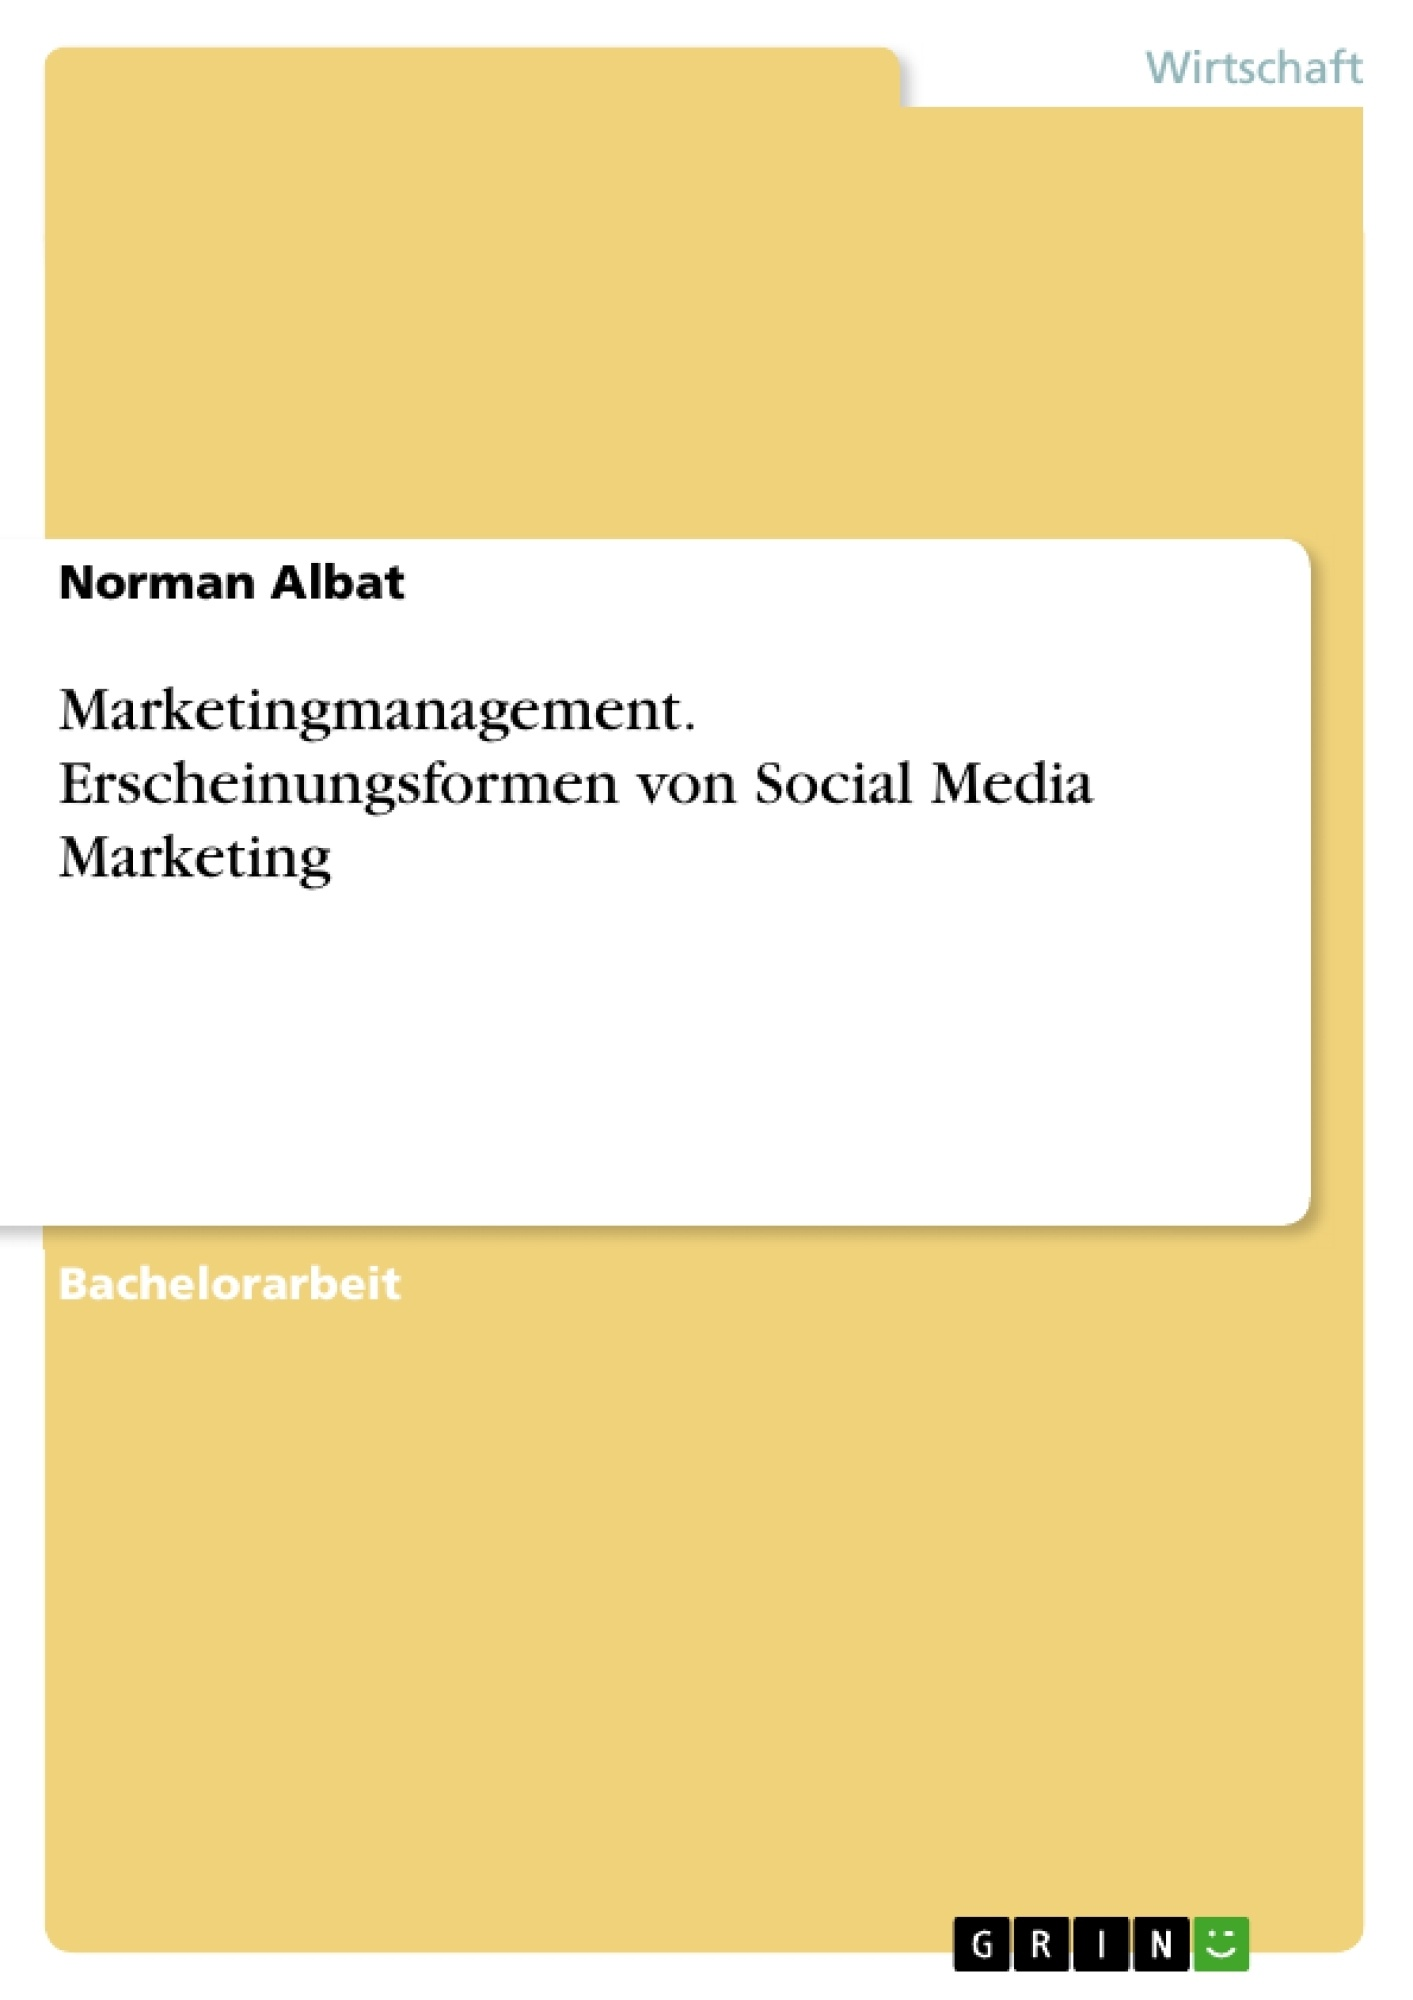 Titel: Marketingmanagement. Erscheinungsformen von Social Media Marketing